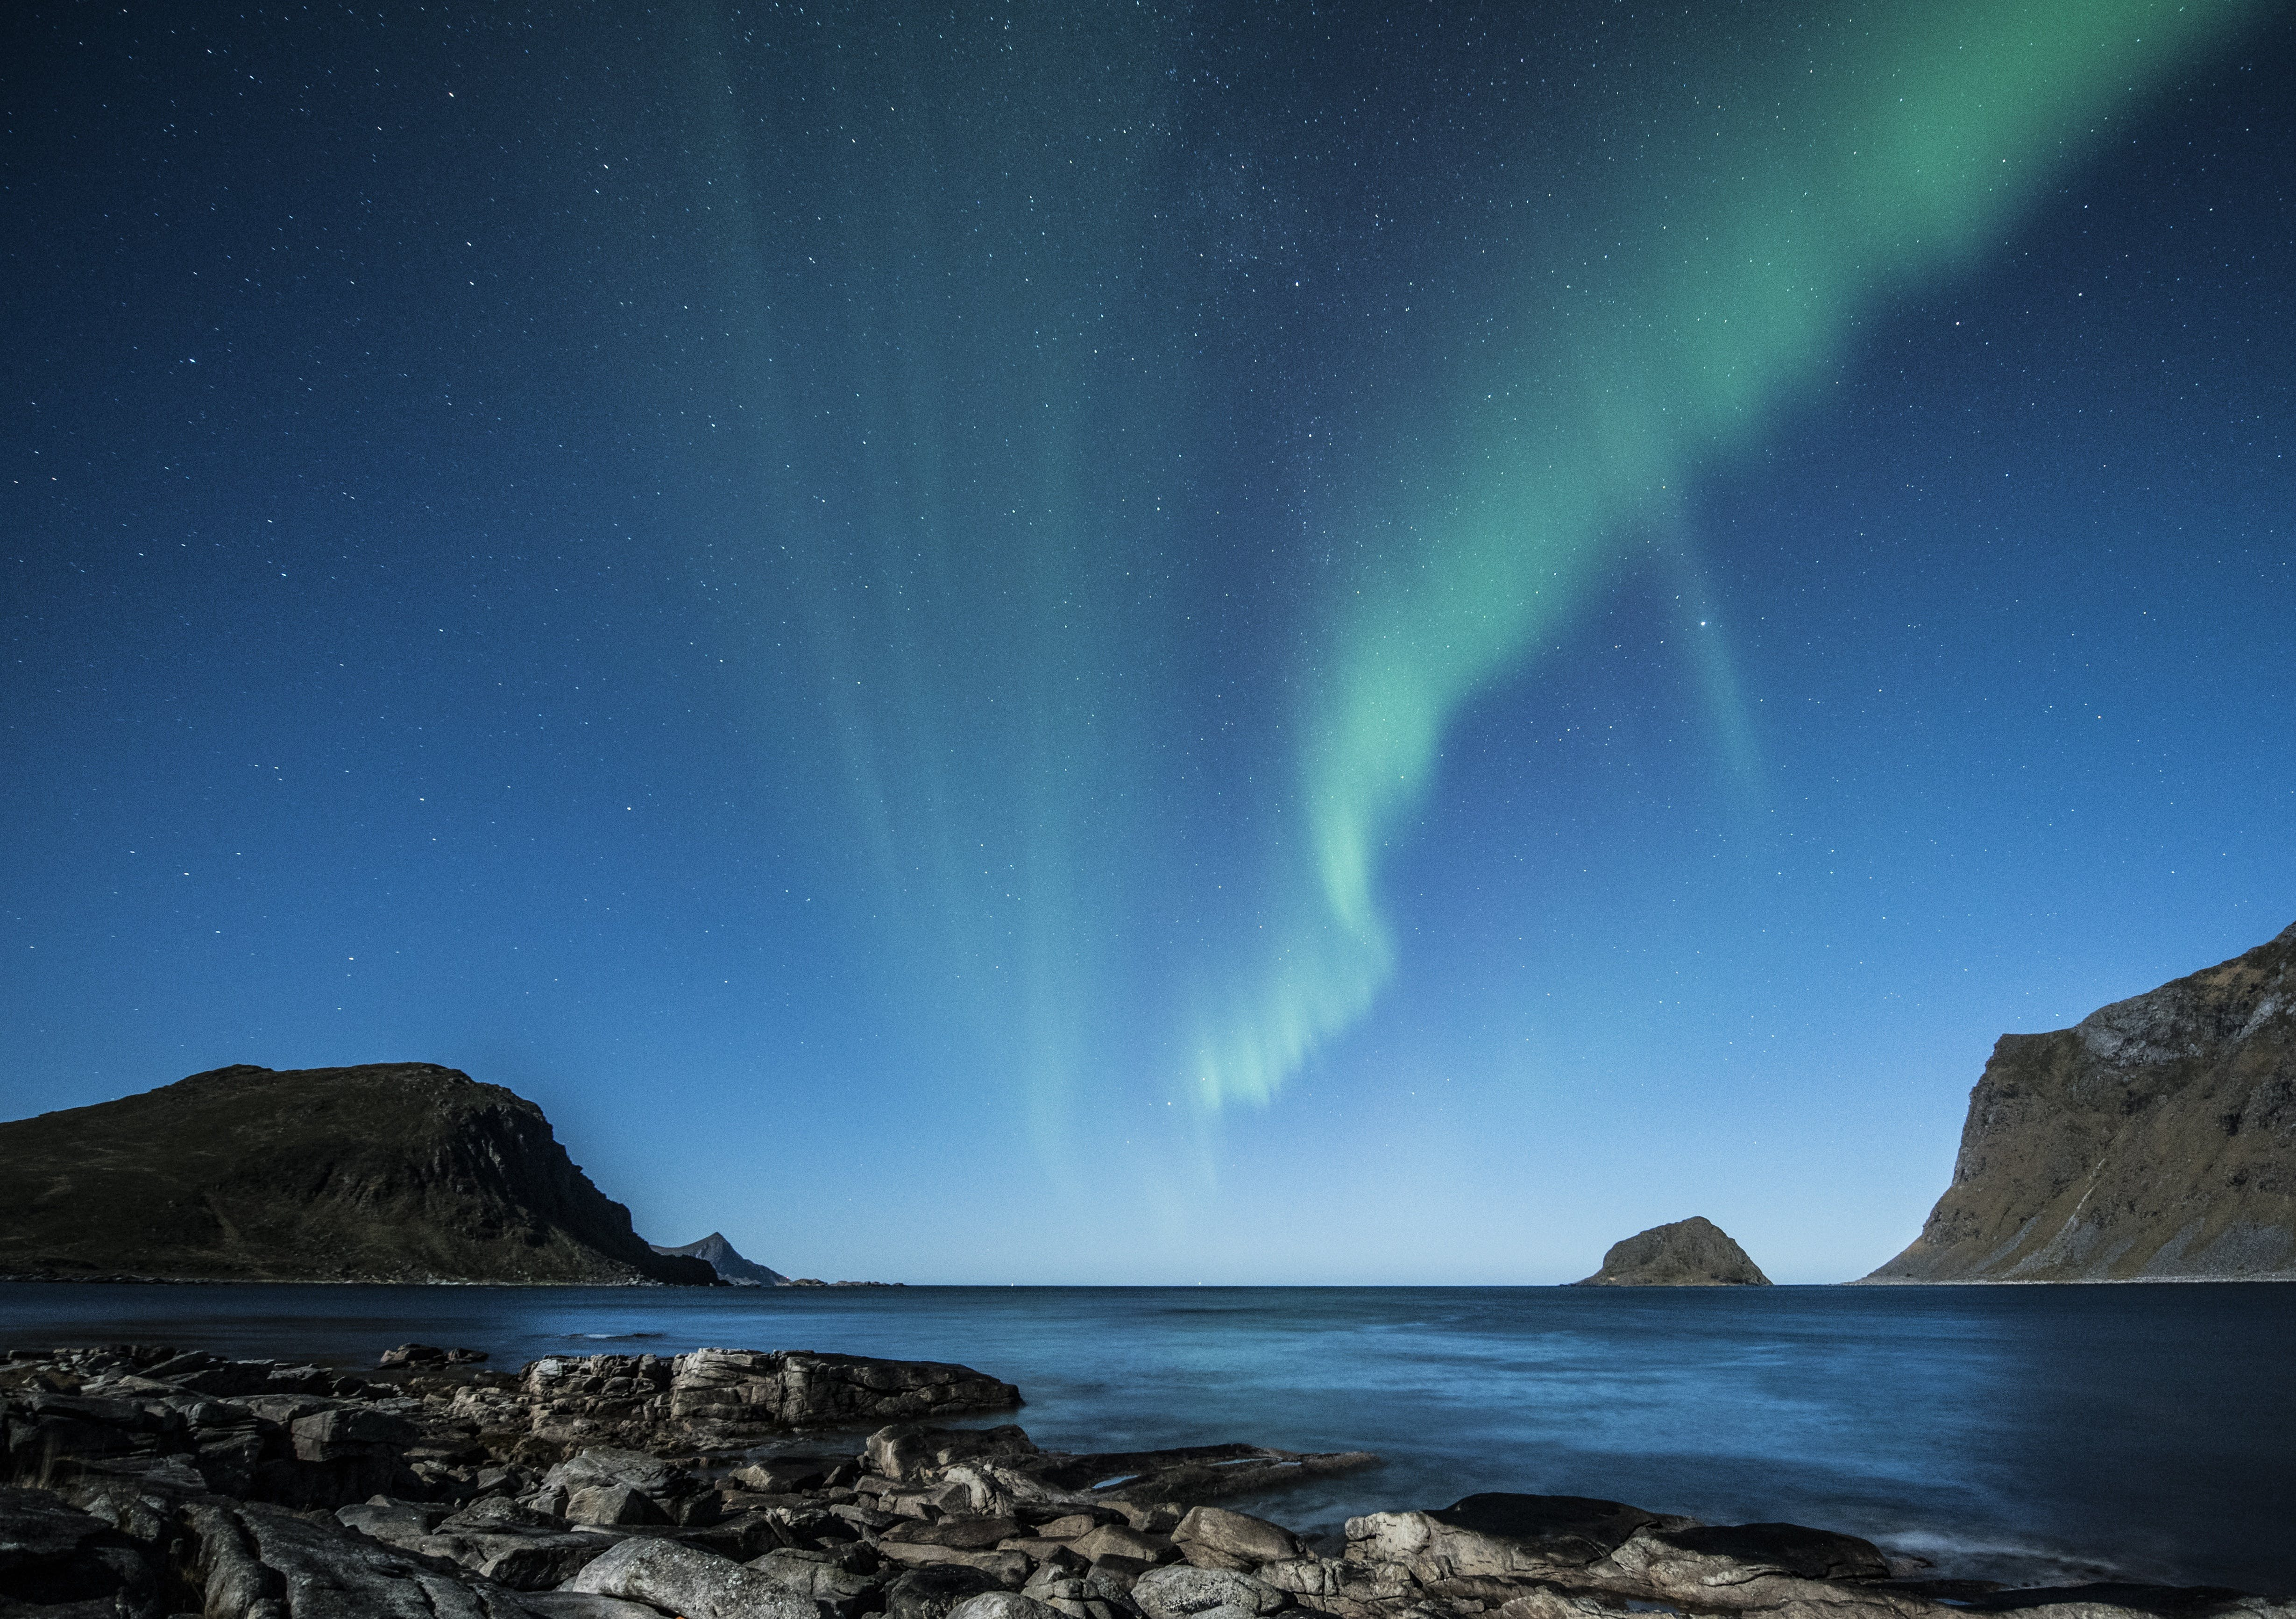 Green Aurora Lights Above Body of Water